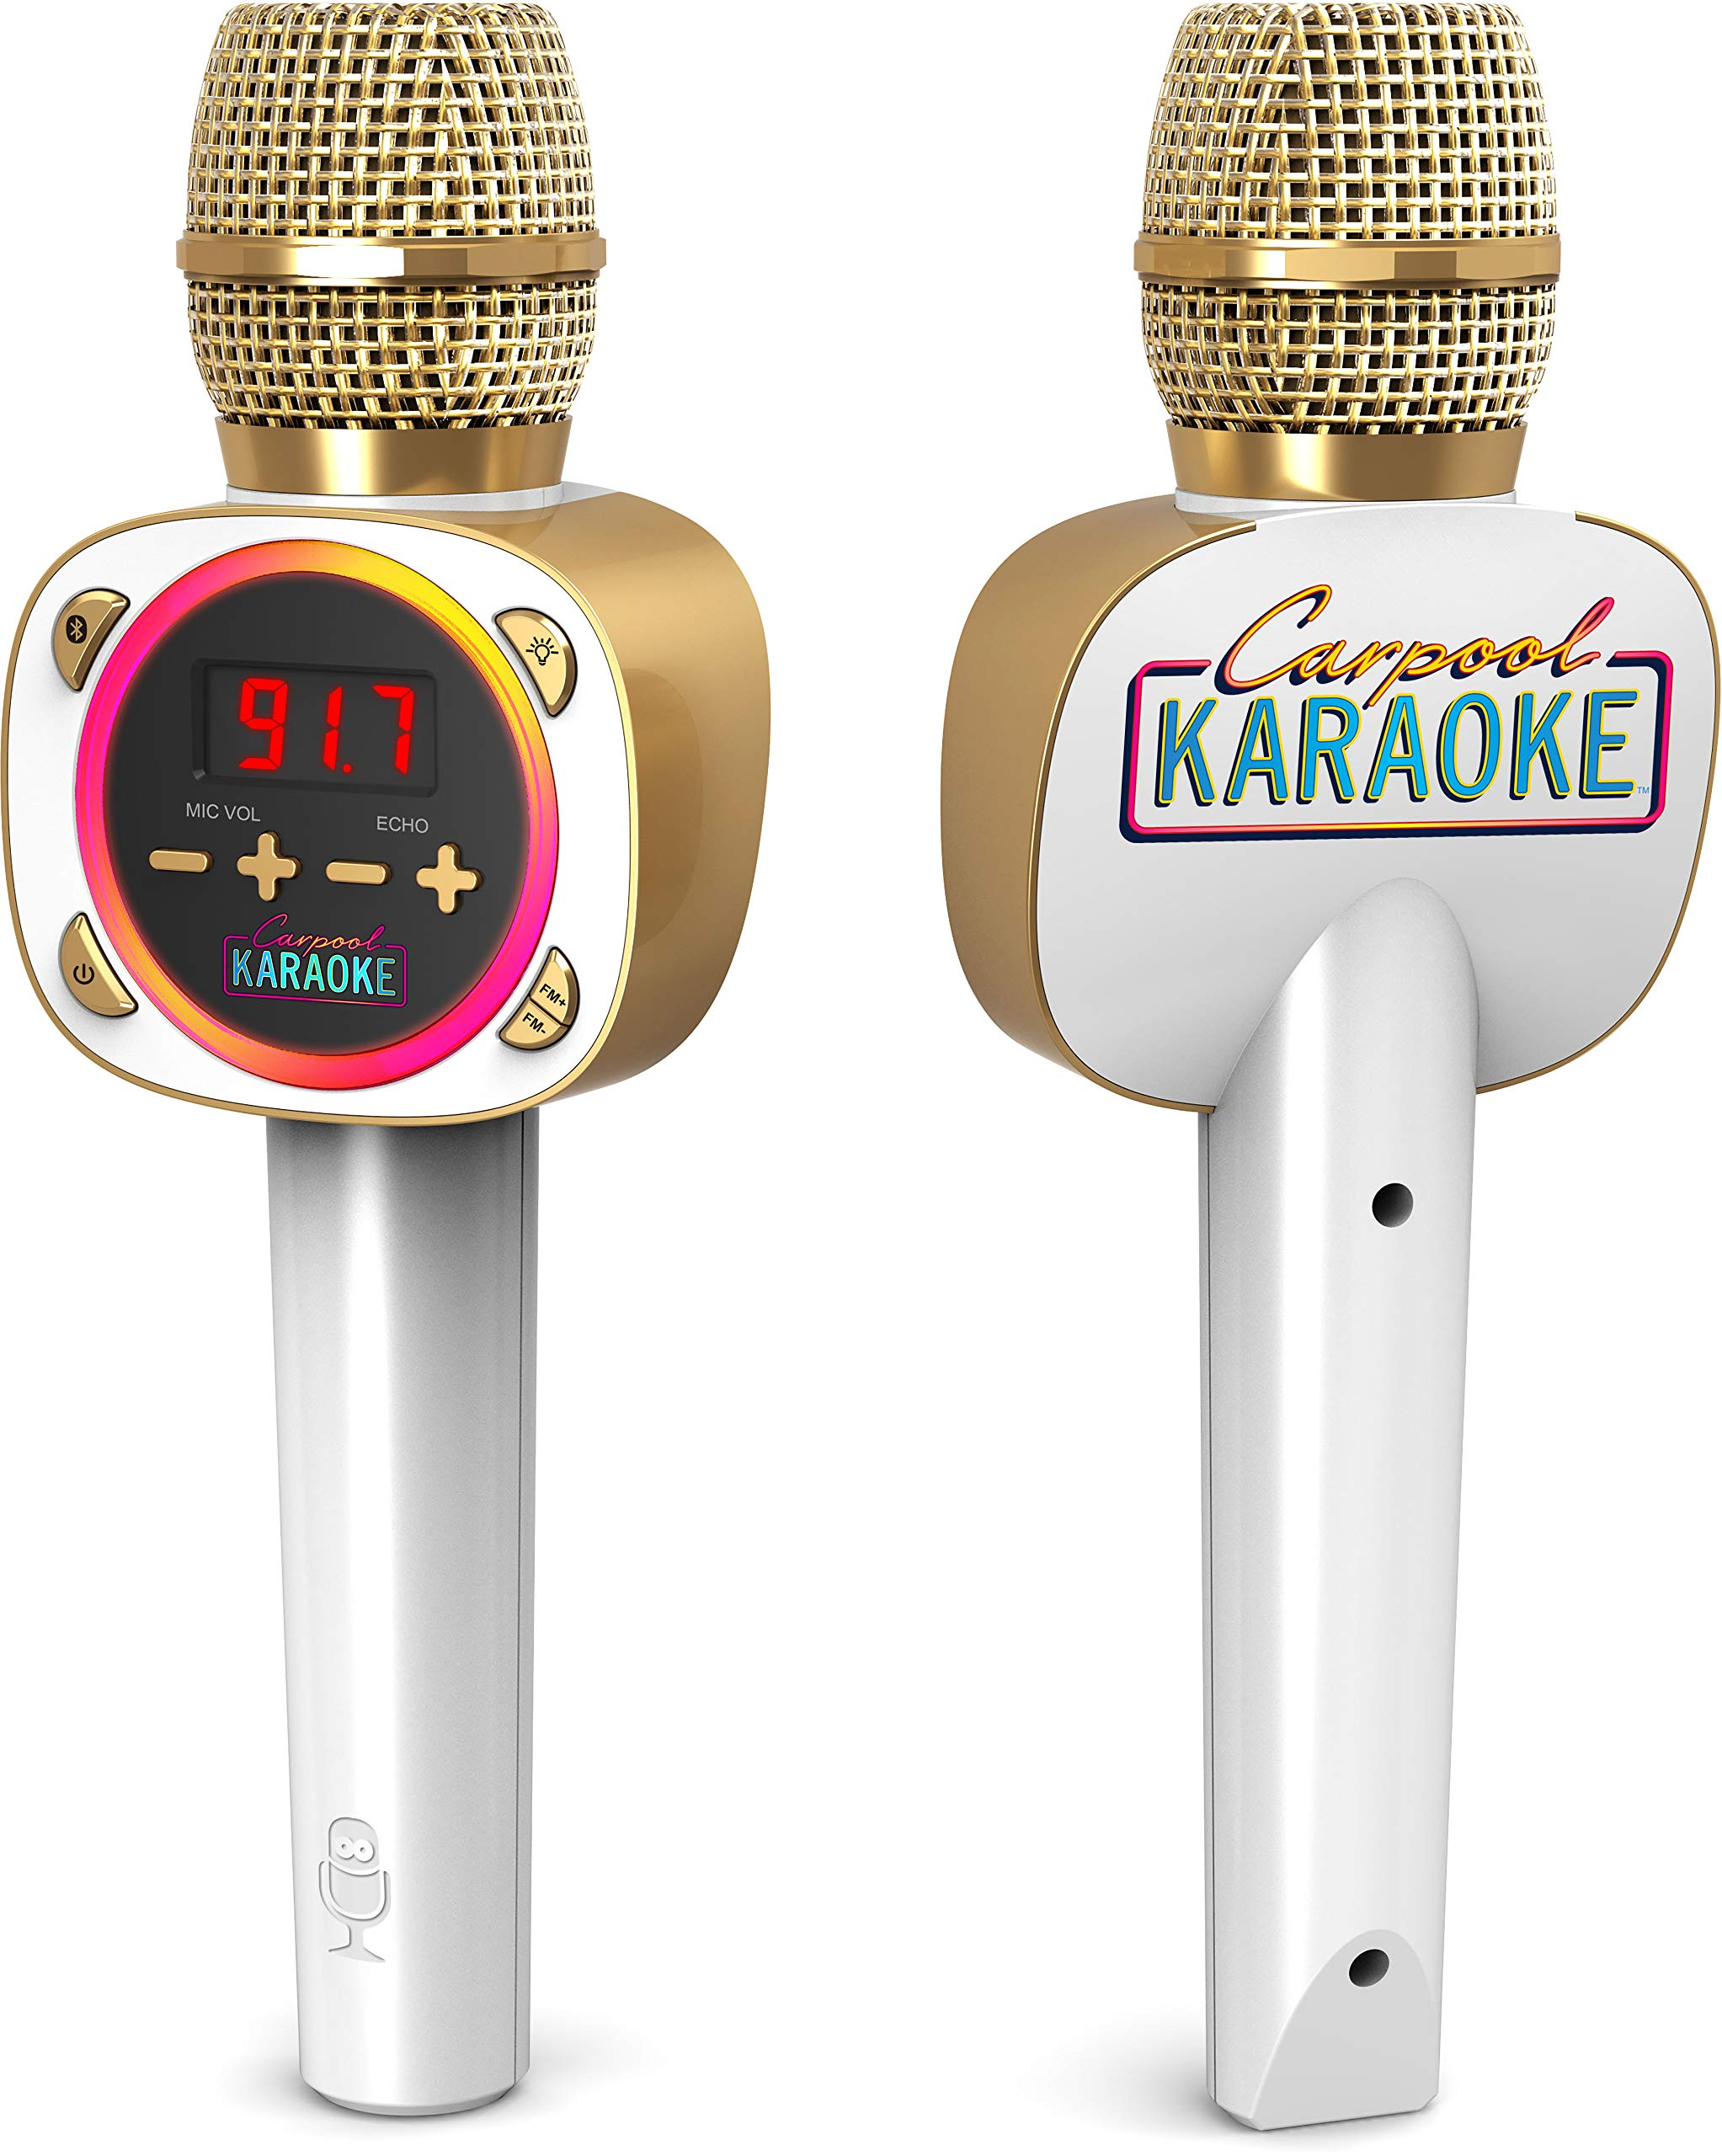 Singing Machine Official Carpool Karaoke, The Mic, Bluetooth Microphone for Cars, White (CPK545) by Singing Machine